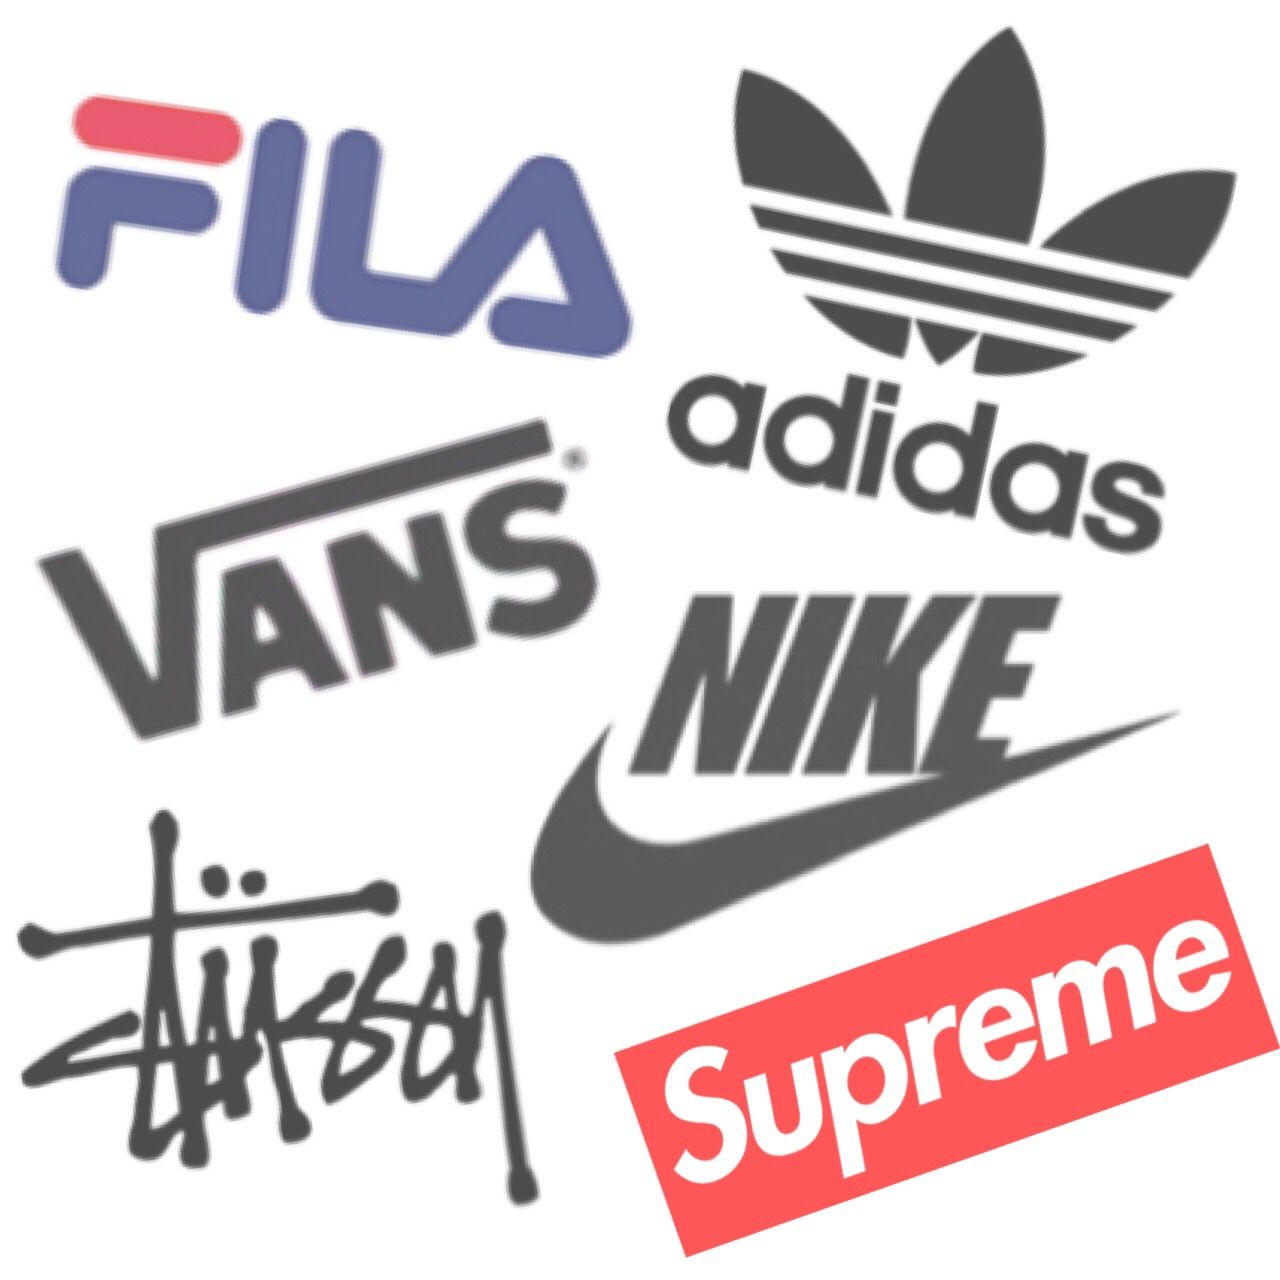 Fila Adidas Vans Nike Supreme Stussy Adidas Iphone Wallpaper Work Motivational Quotes Store Design Interior